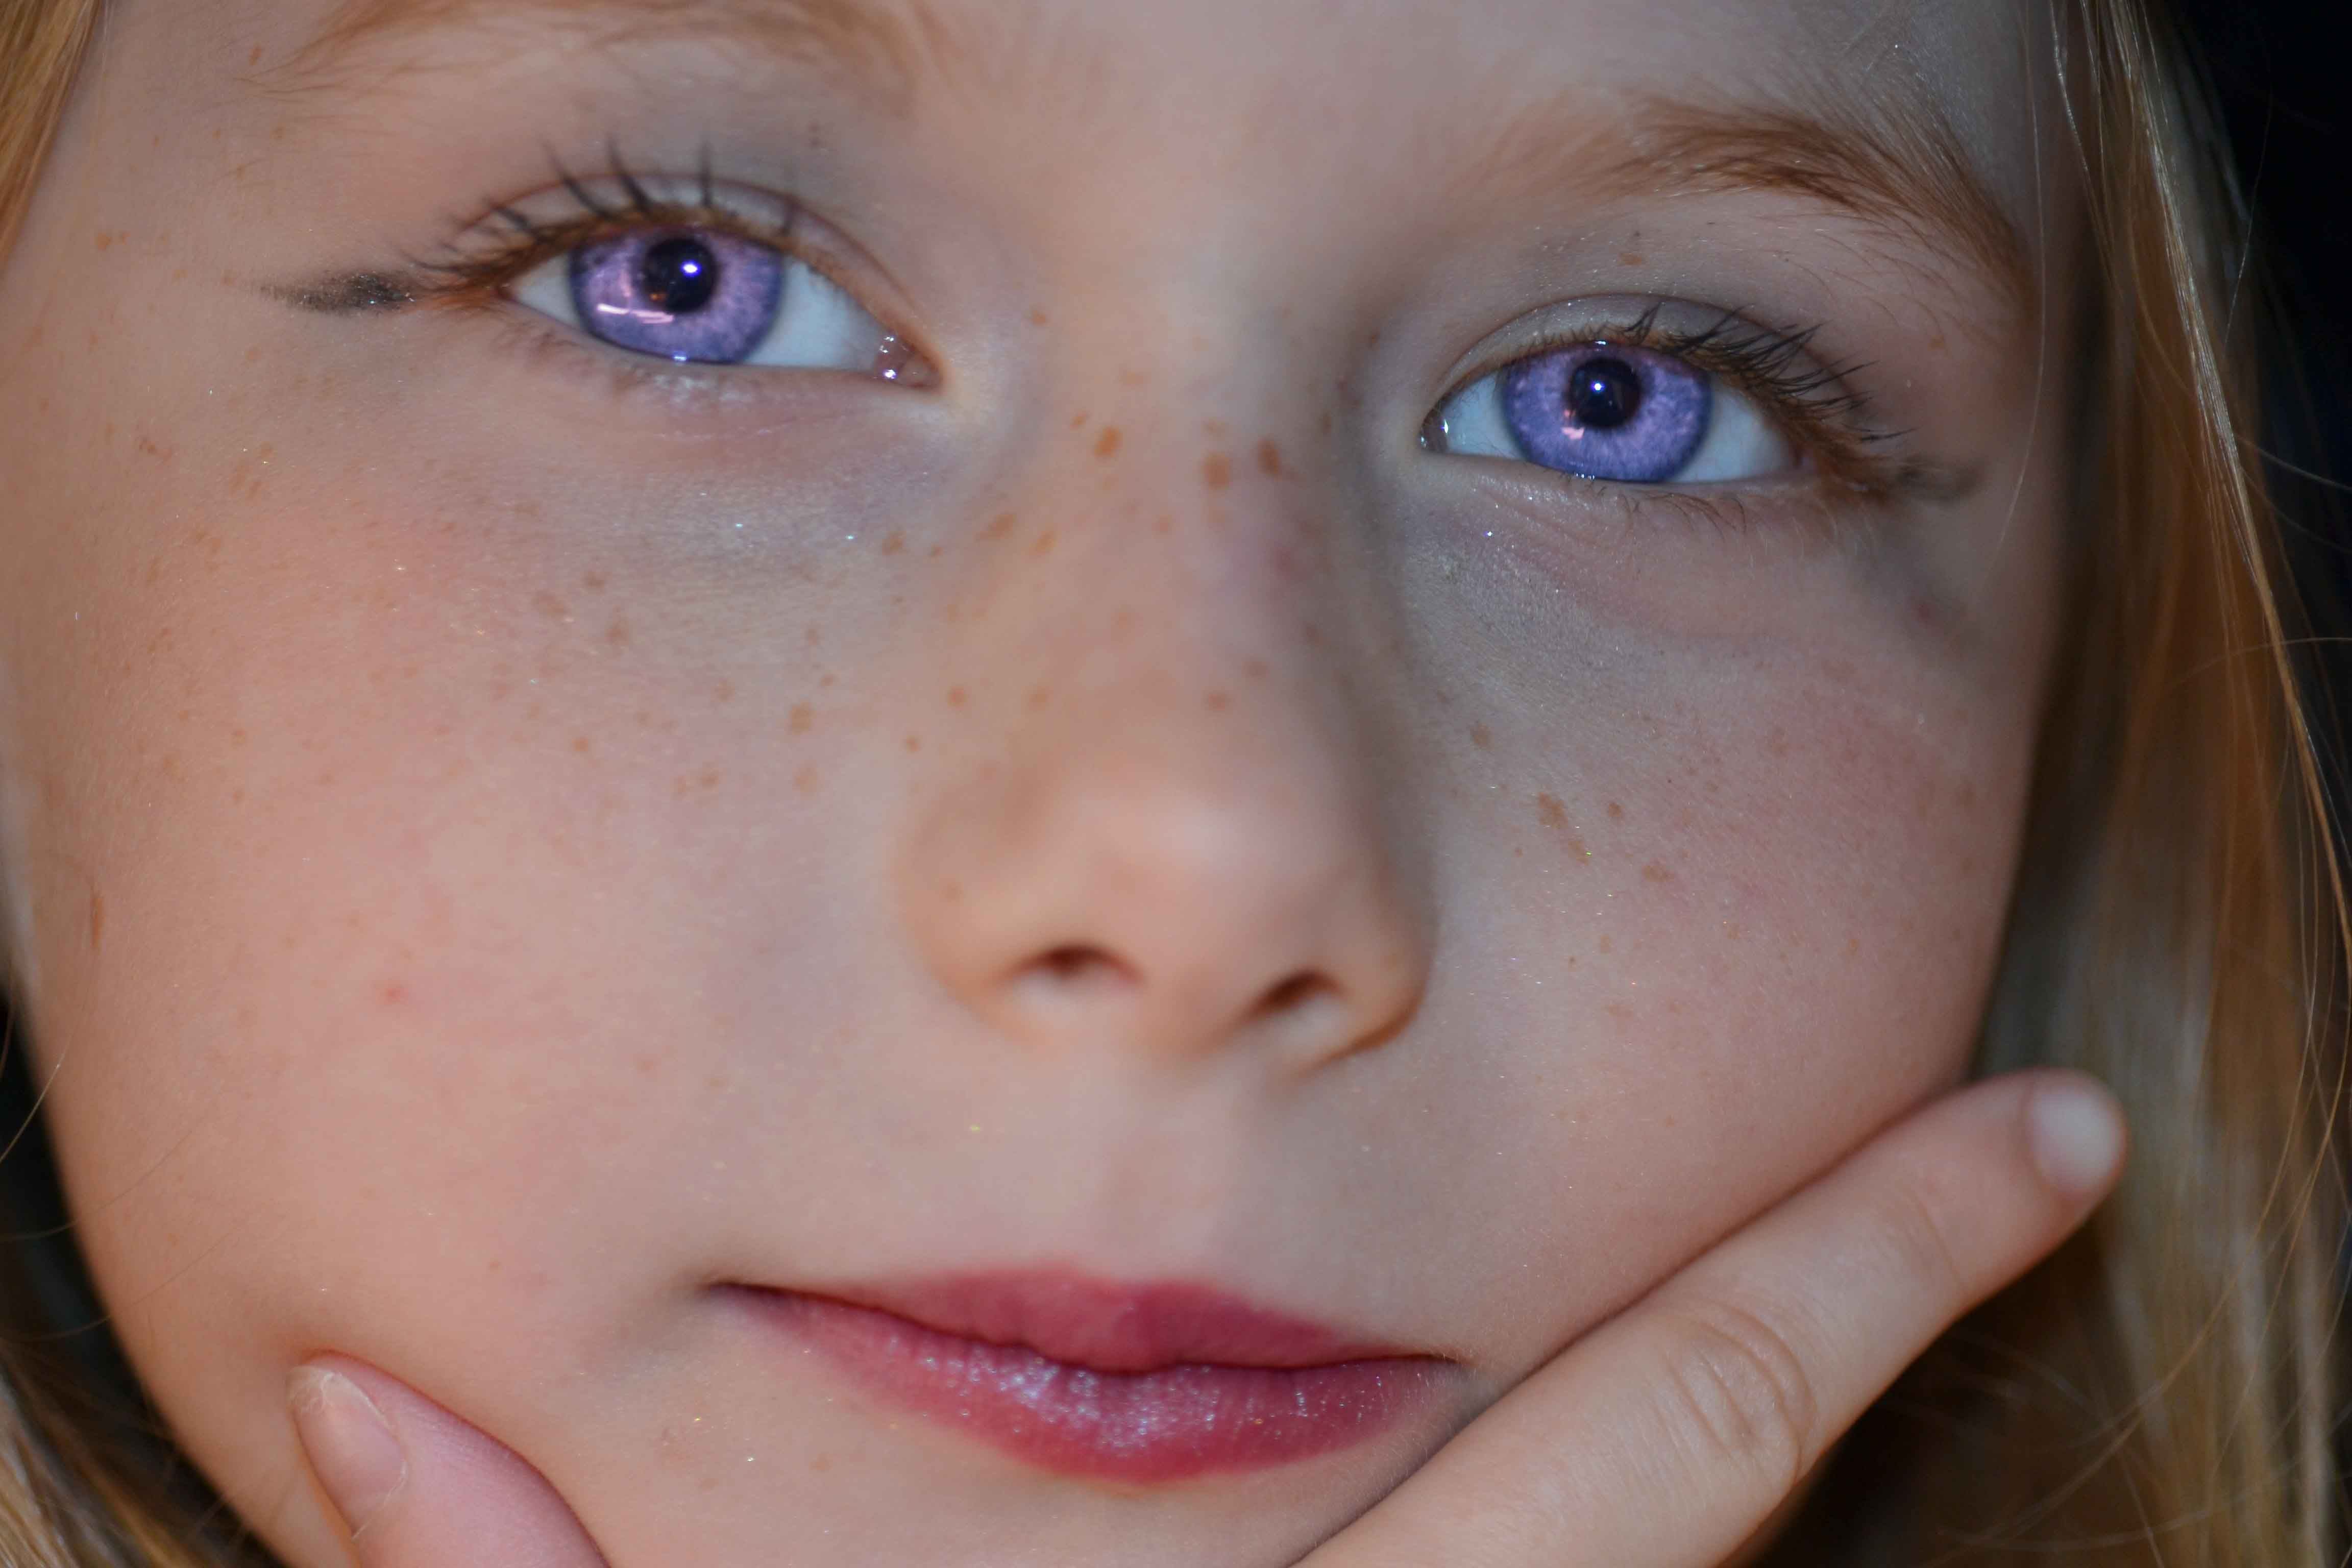 Violet eyes | The Eyℯs ϾϾ Have It. | Pinterest